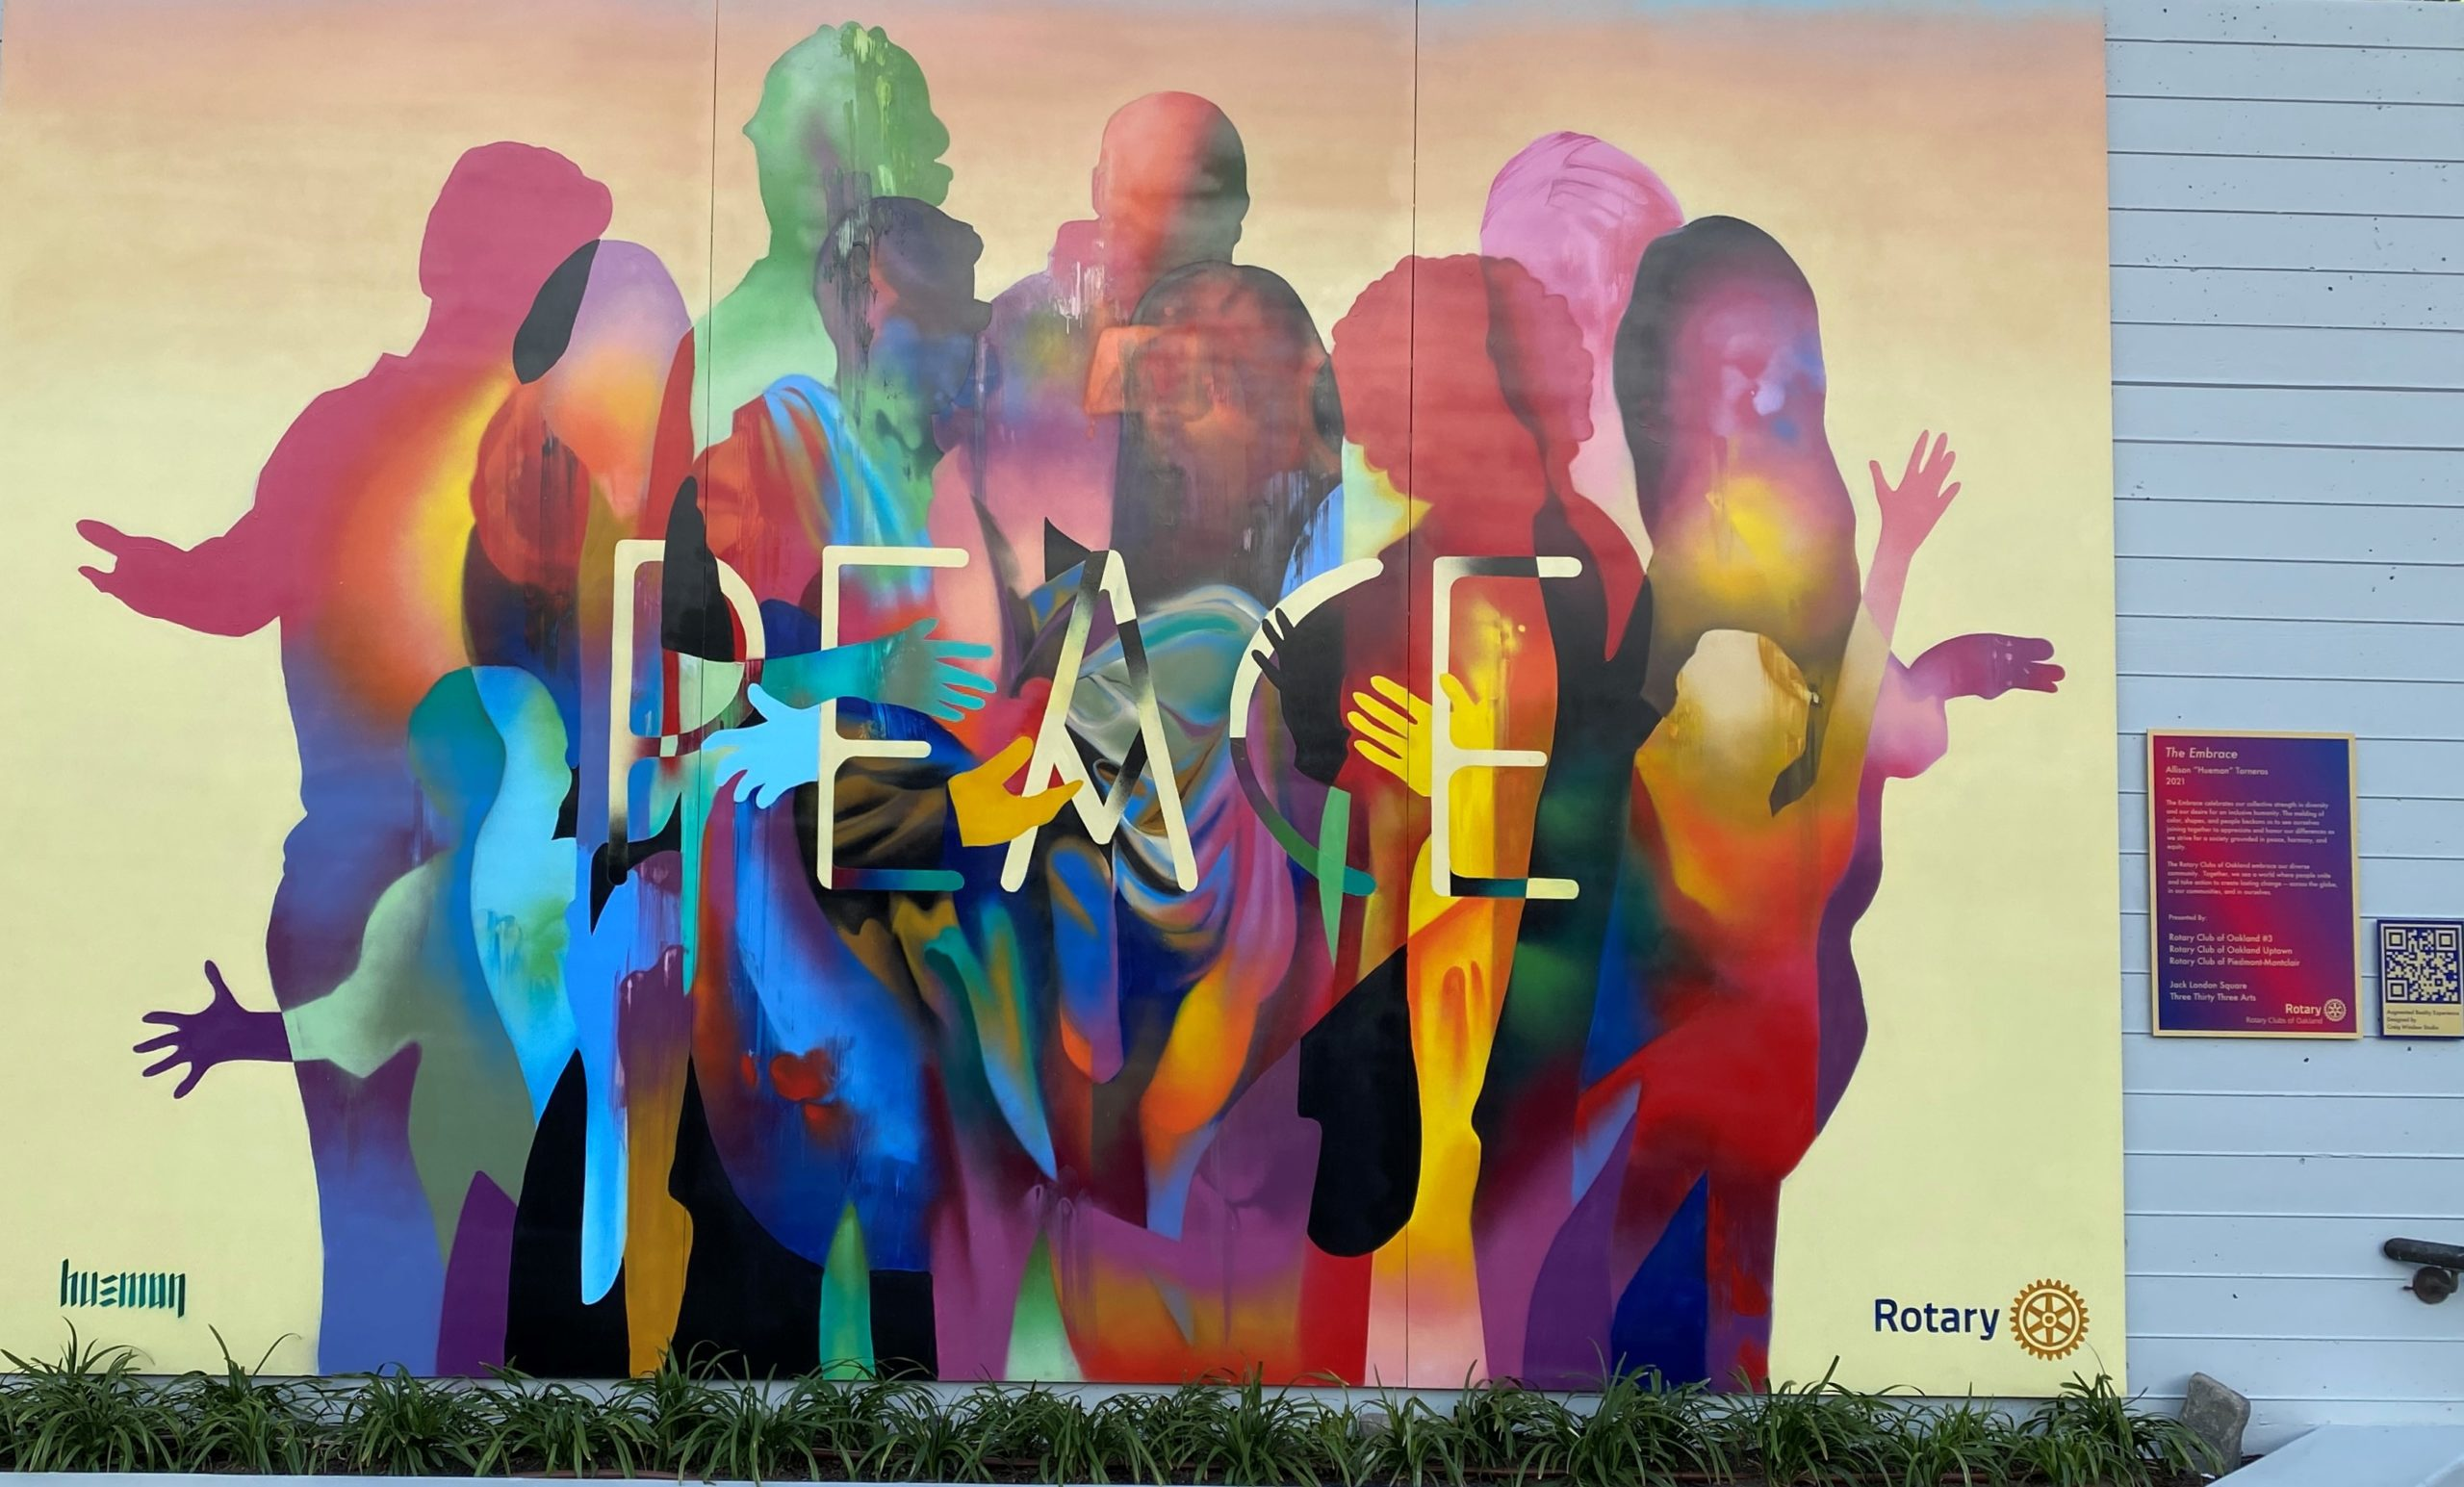 The Embrace Peace Mural by Hueman in Jack London Square